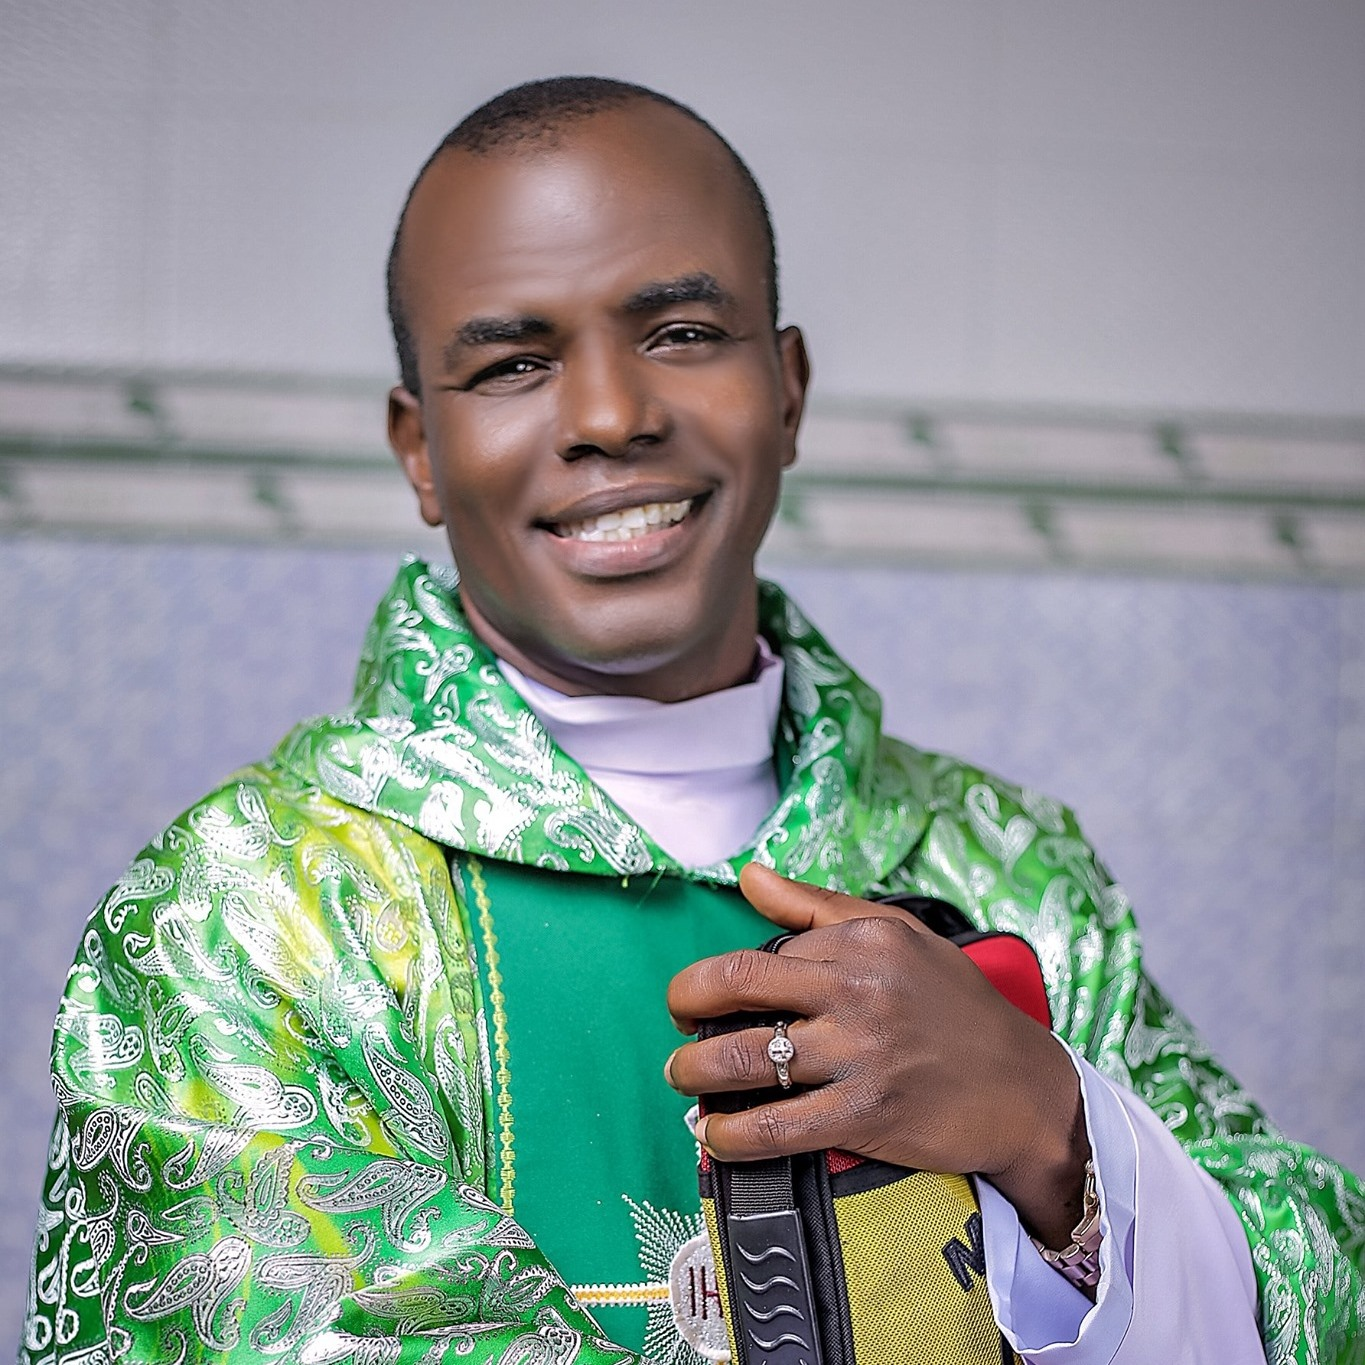 Untold story of Rev Fr. Ejike Mbaka - His early life as Palm Wine Tapper